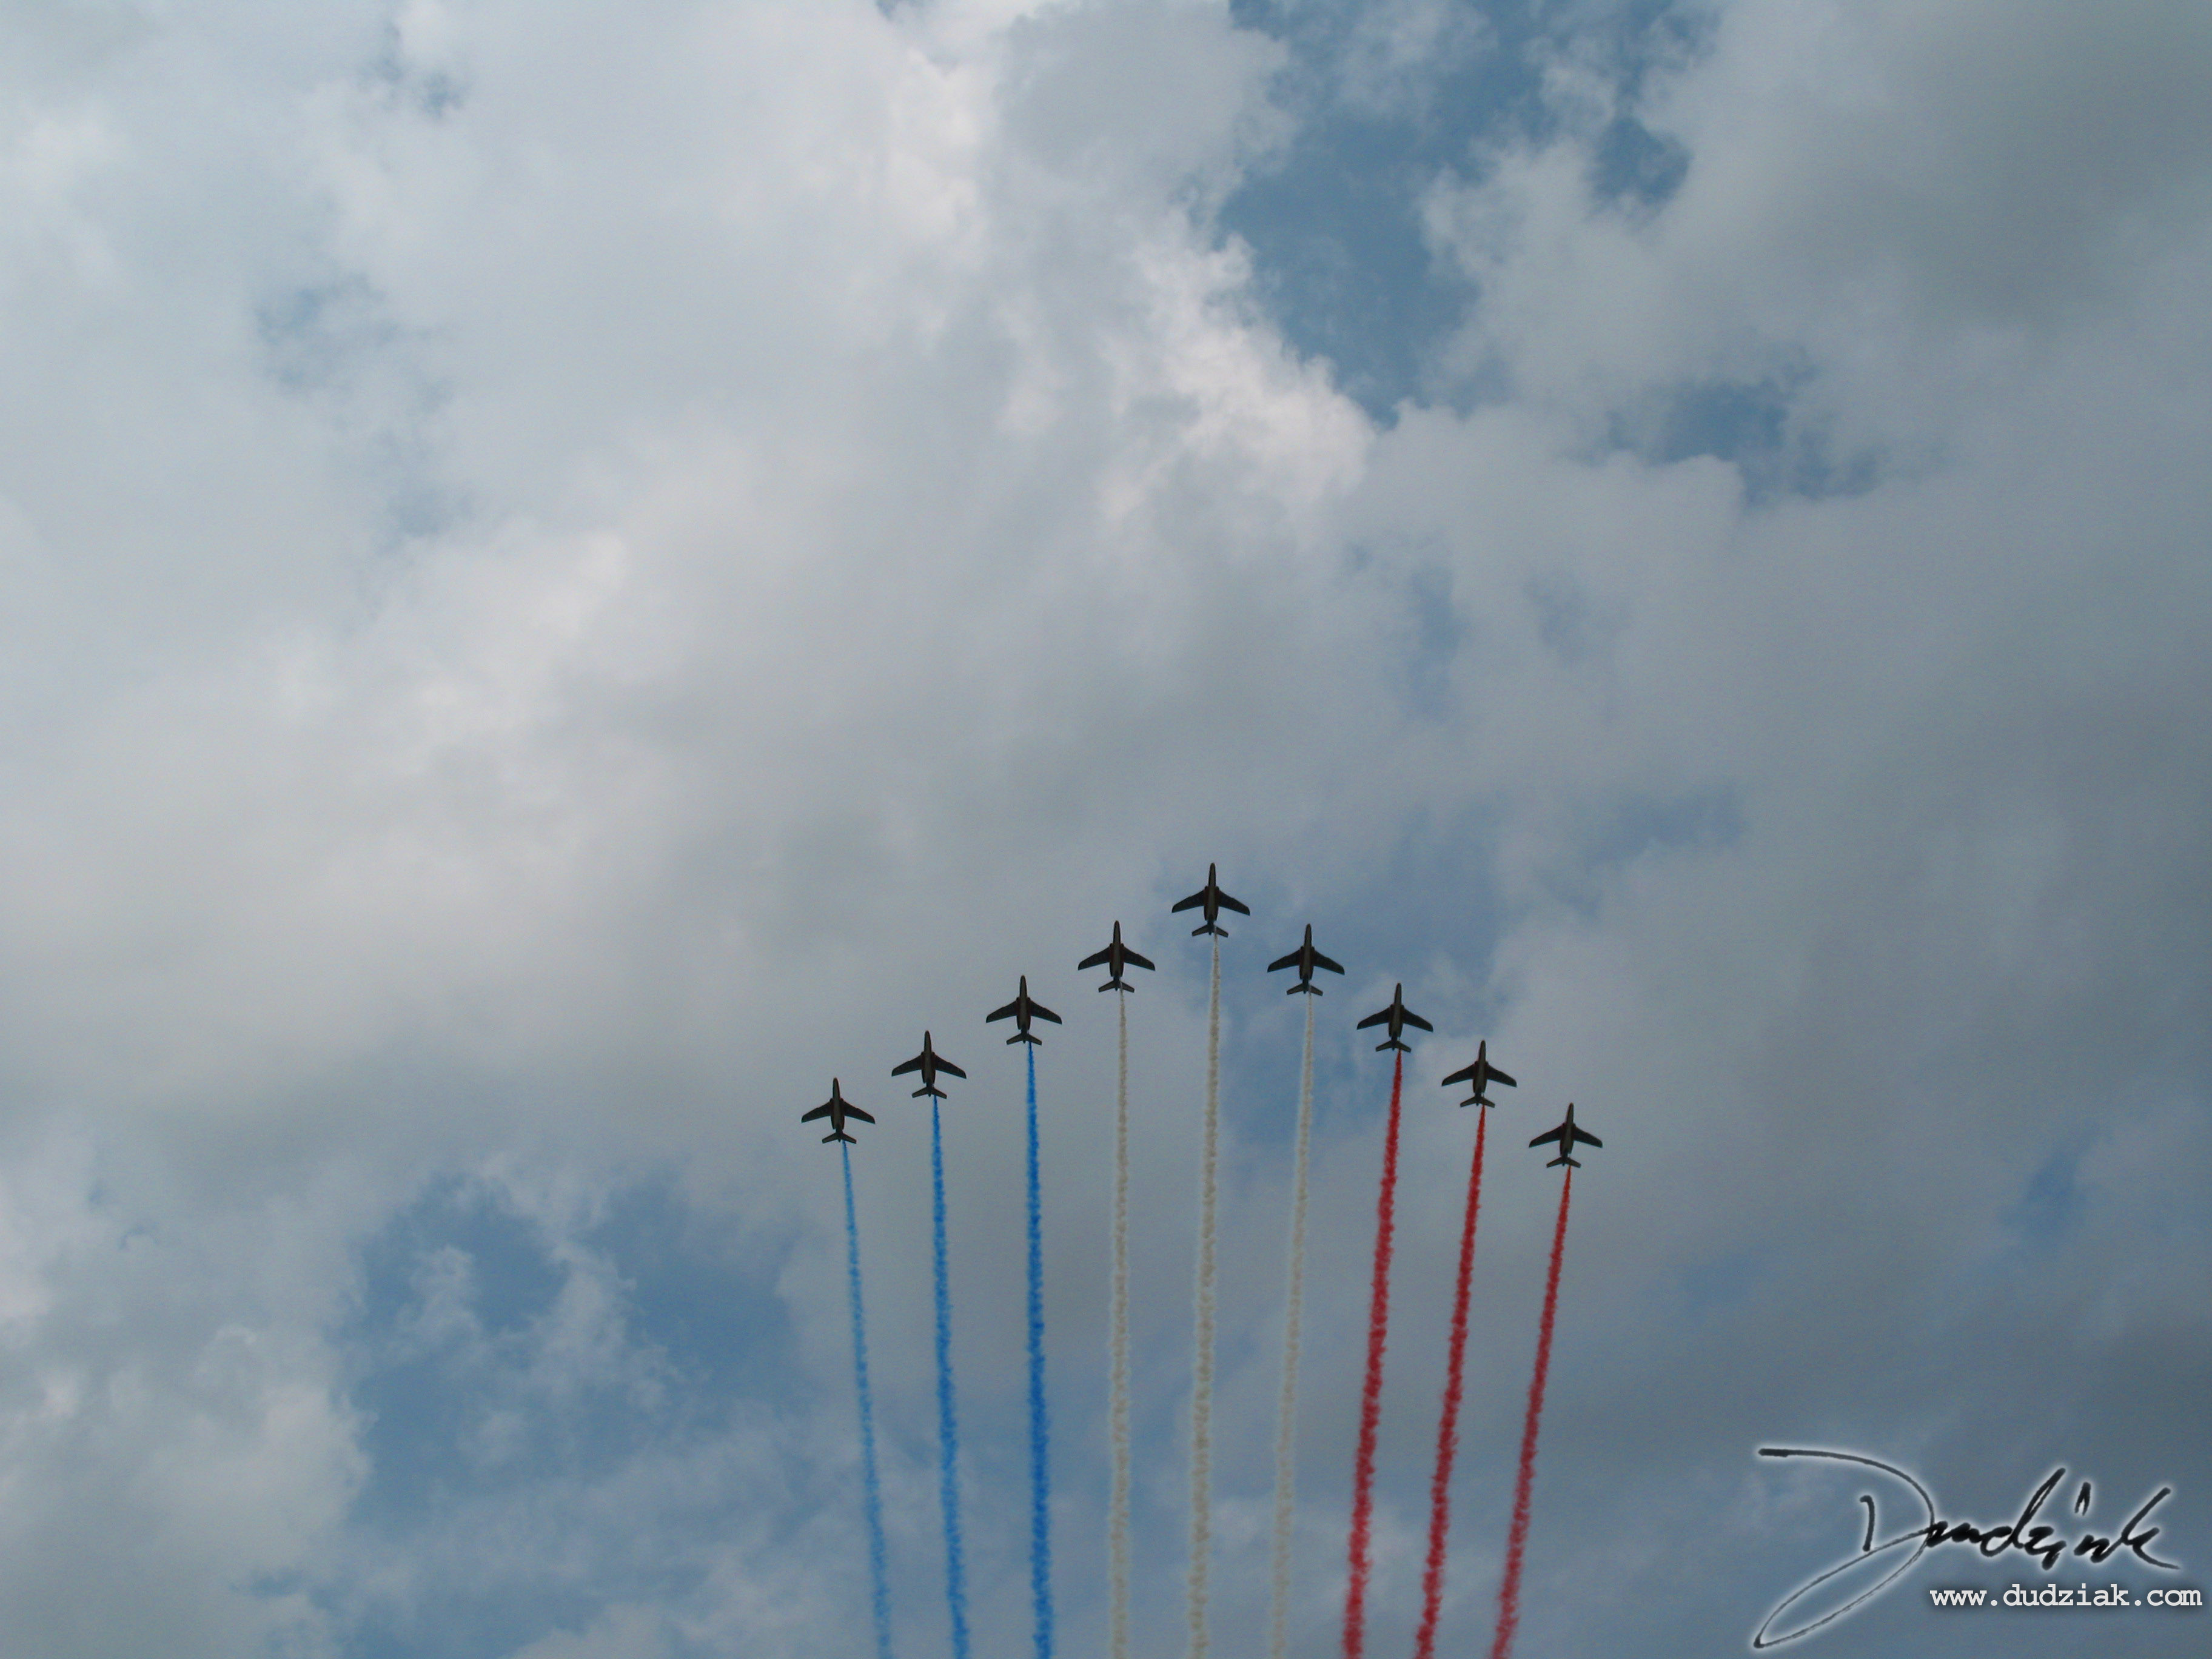 Quatorze Juillet,  french fighters,  airplanes,  jets,  french air force,  Paris,  France,  Bastille Day